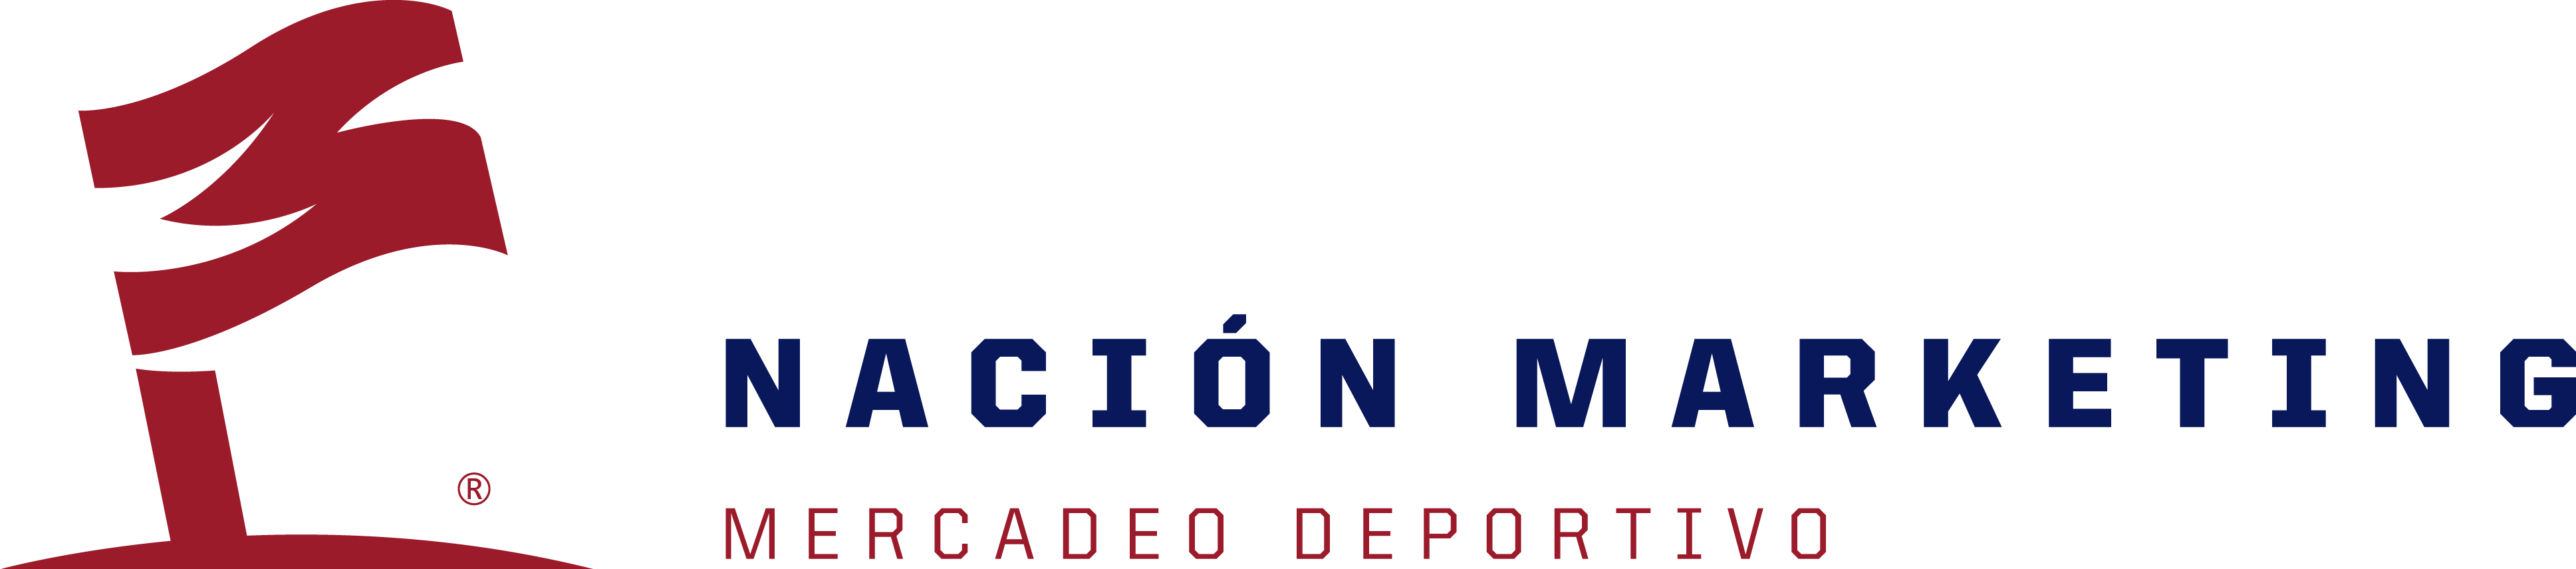 Nacion Marketing